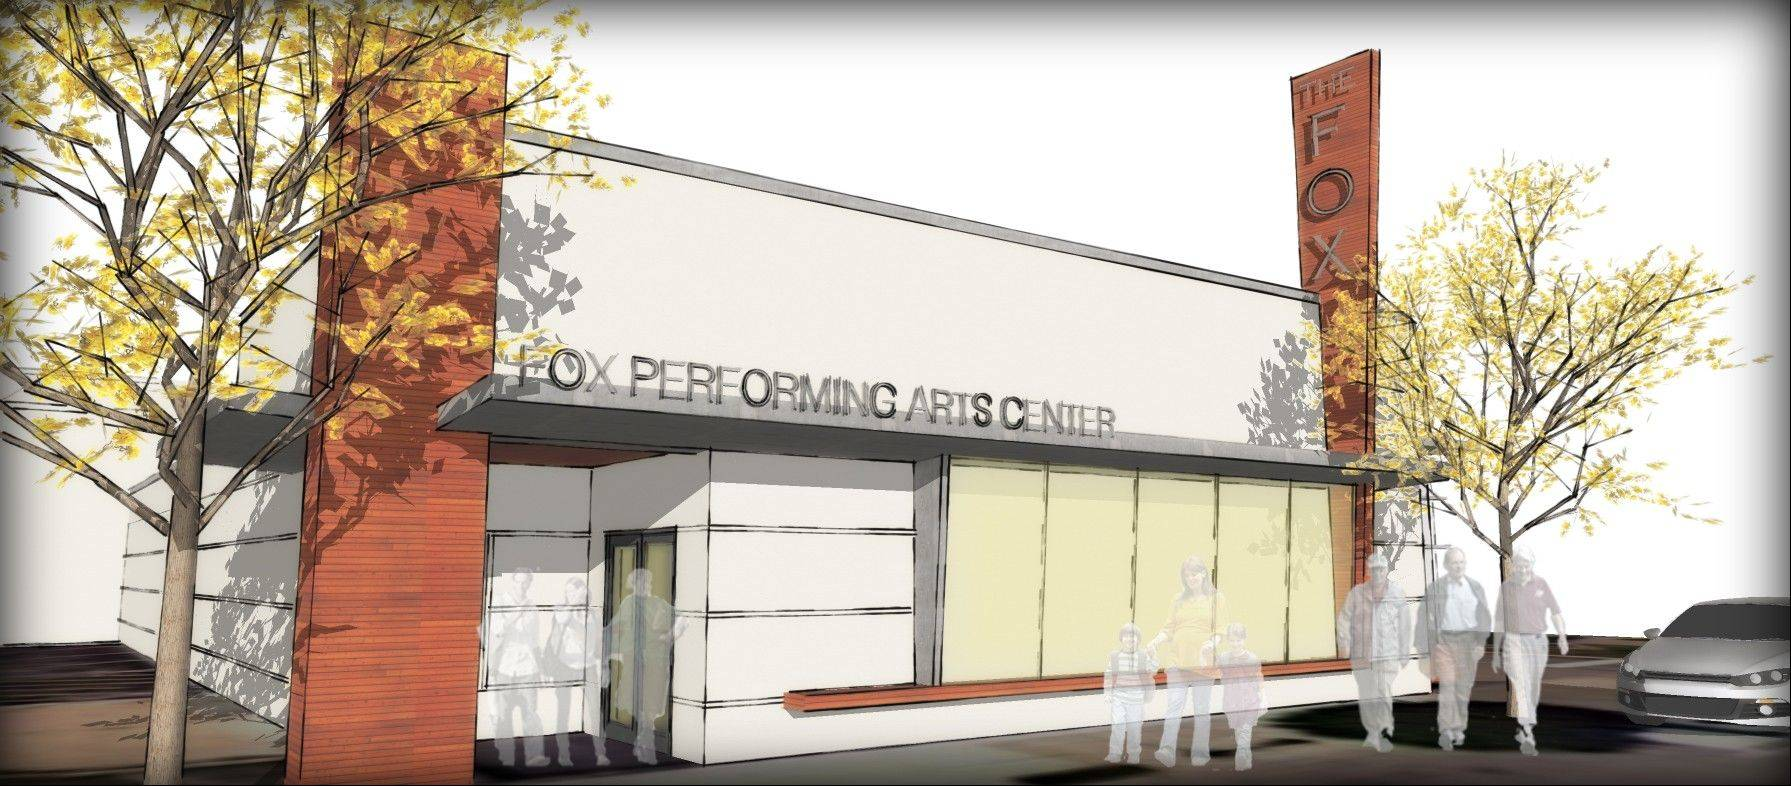 Local architect Rick Browne hopes to turn the former Ziegler�s Ace Hardware building in downtown West Dundee into a regional performing arts center.